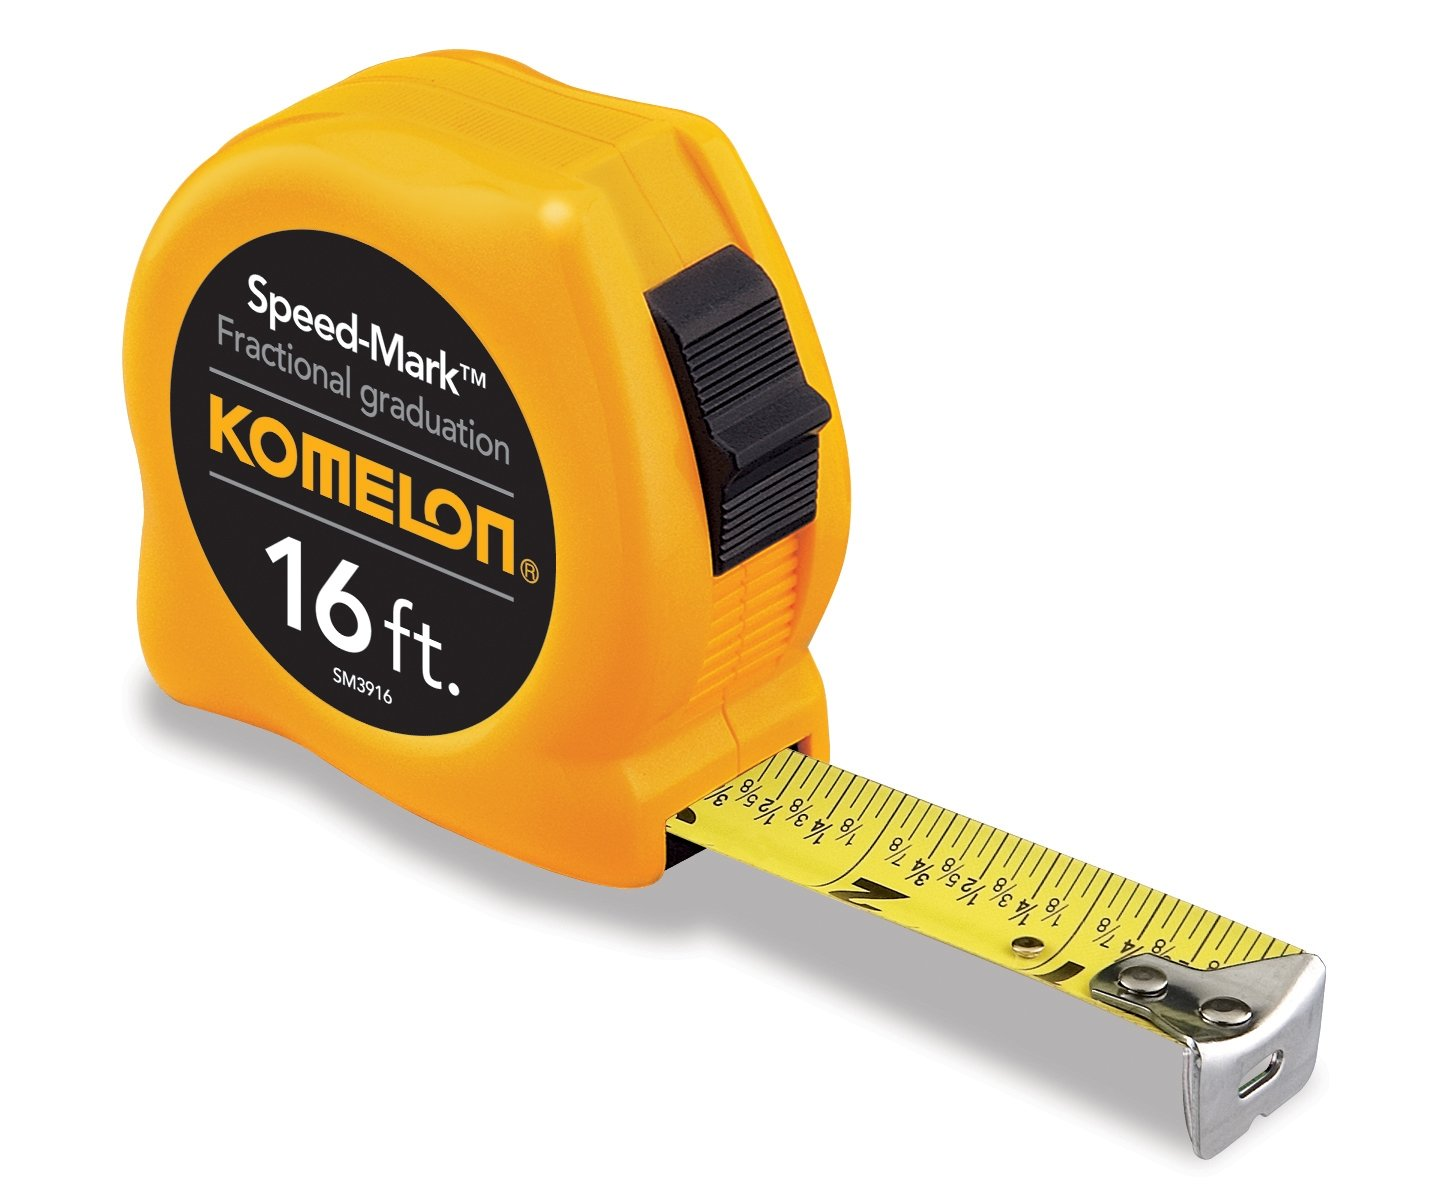 Komelon SM3916 Speed Mark Acrylic Coated Steel Blade Tape Measure 16-Feet by 3/4-Inch, Yellow Case